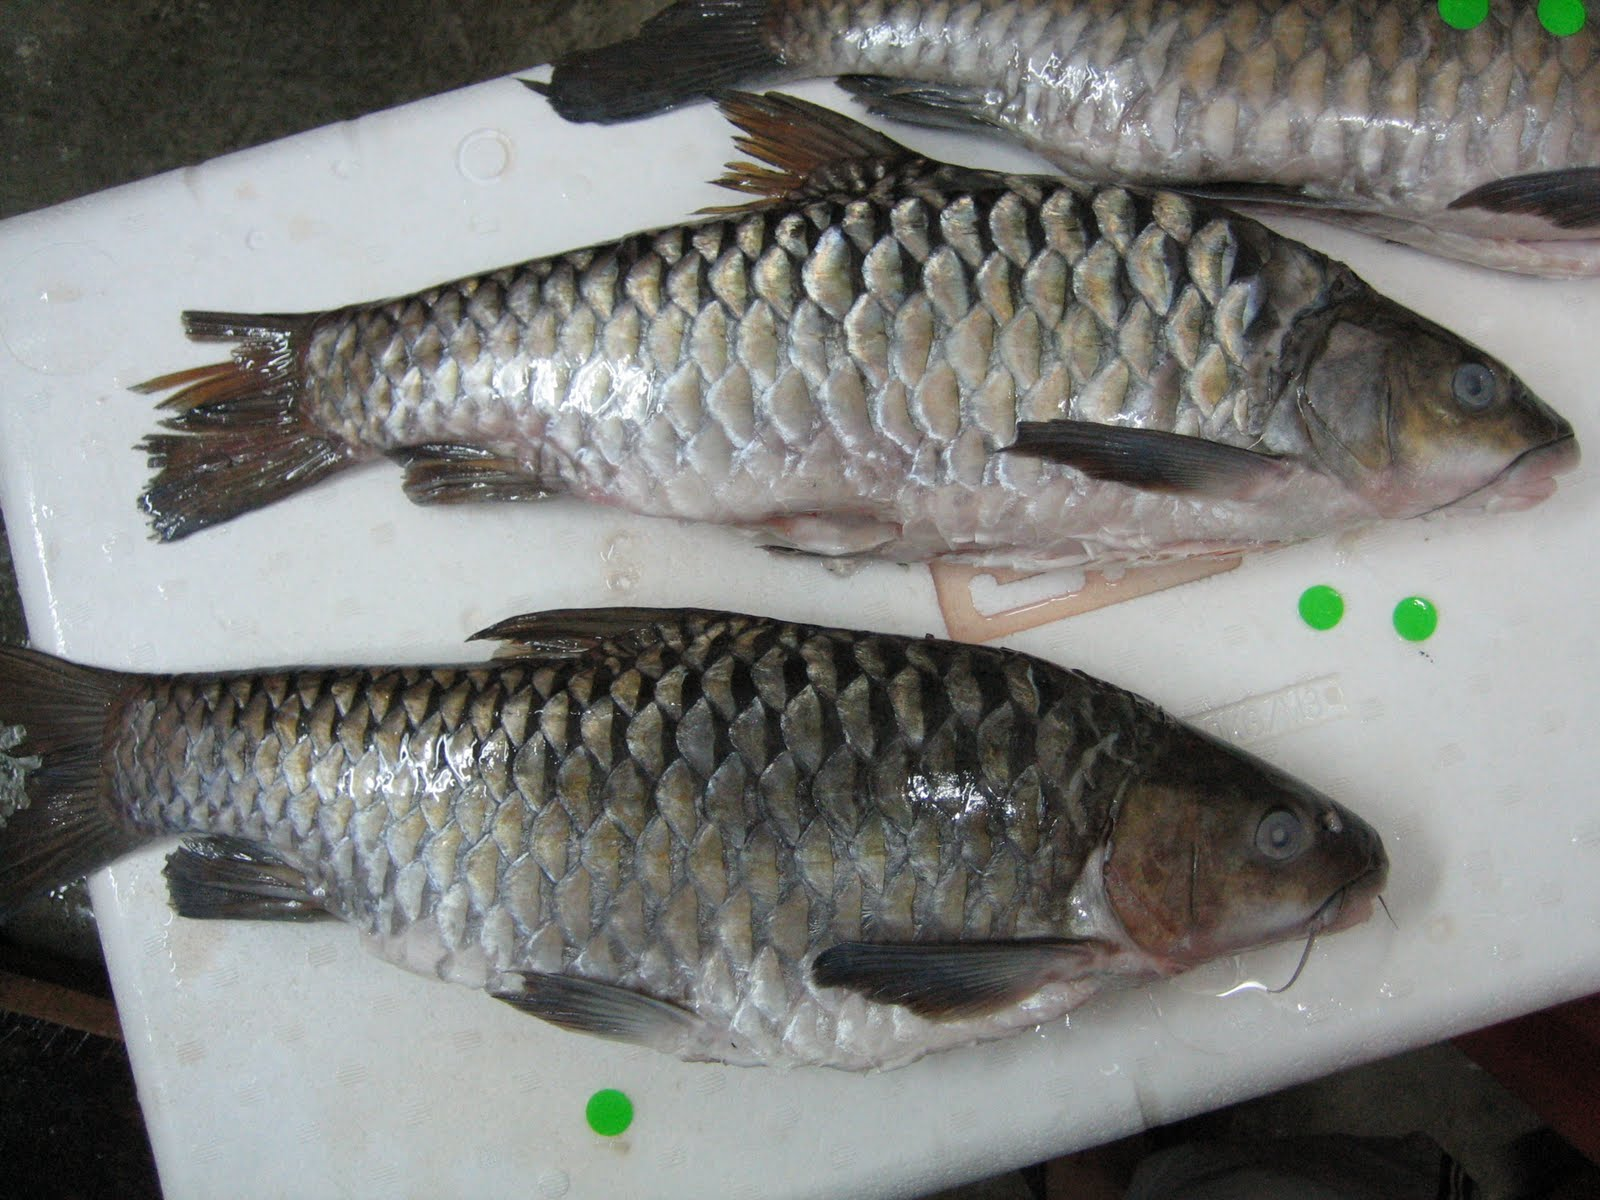 Freshwater fish in malaysia - After The Fish Are Cleaned Properly All The Empurau Were Qc Piece By Piece To Separate Between The Spoilt Loko Hard Skin And Good Quality Aromatic Smell